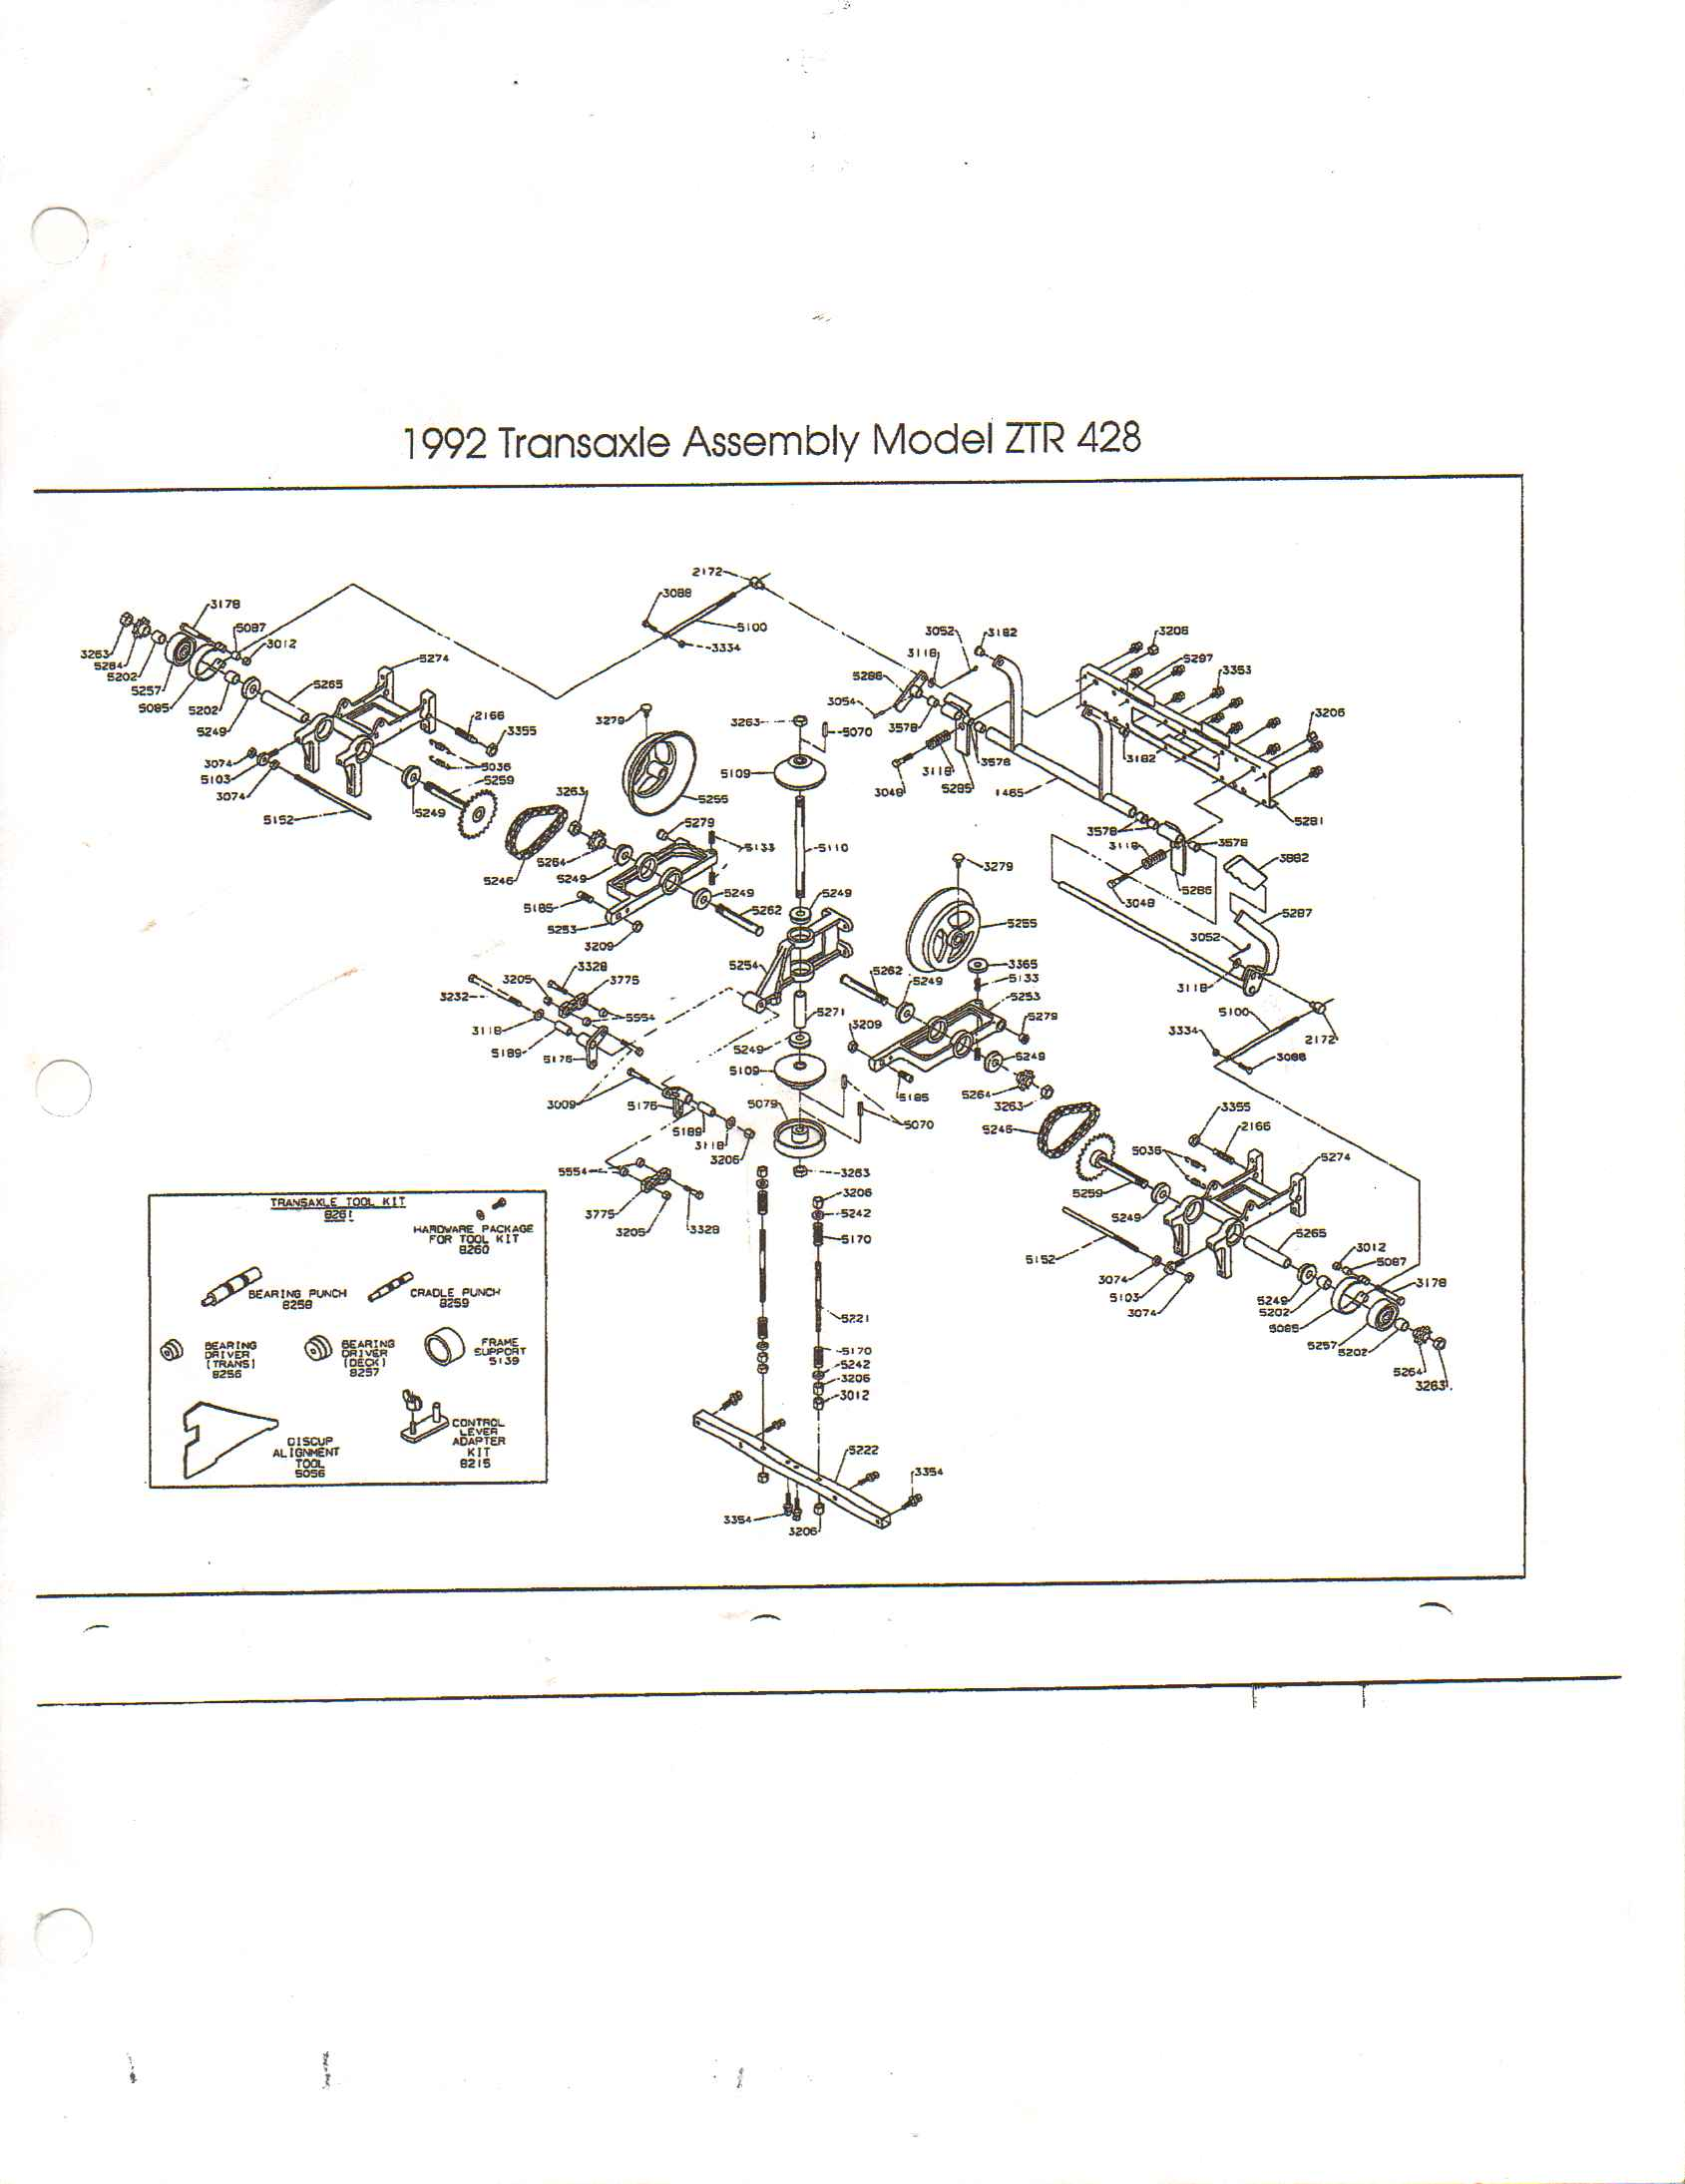 briggs and stratton wiring diagram hp briggs dixon ztr 428 wiring diagram jodebal com on briggs and stratton wiring diagram 21 hp